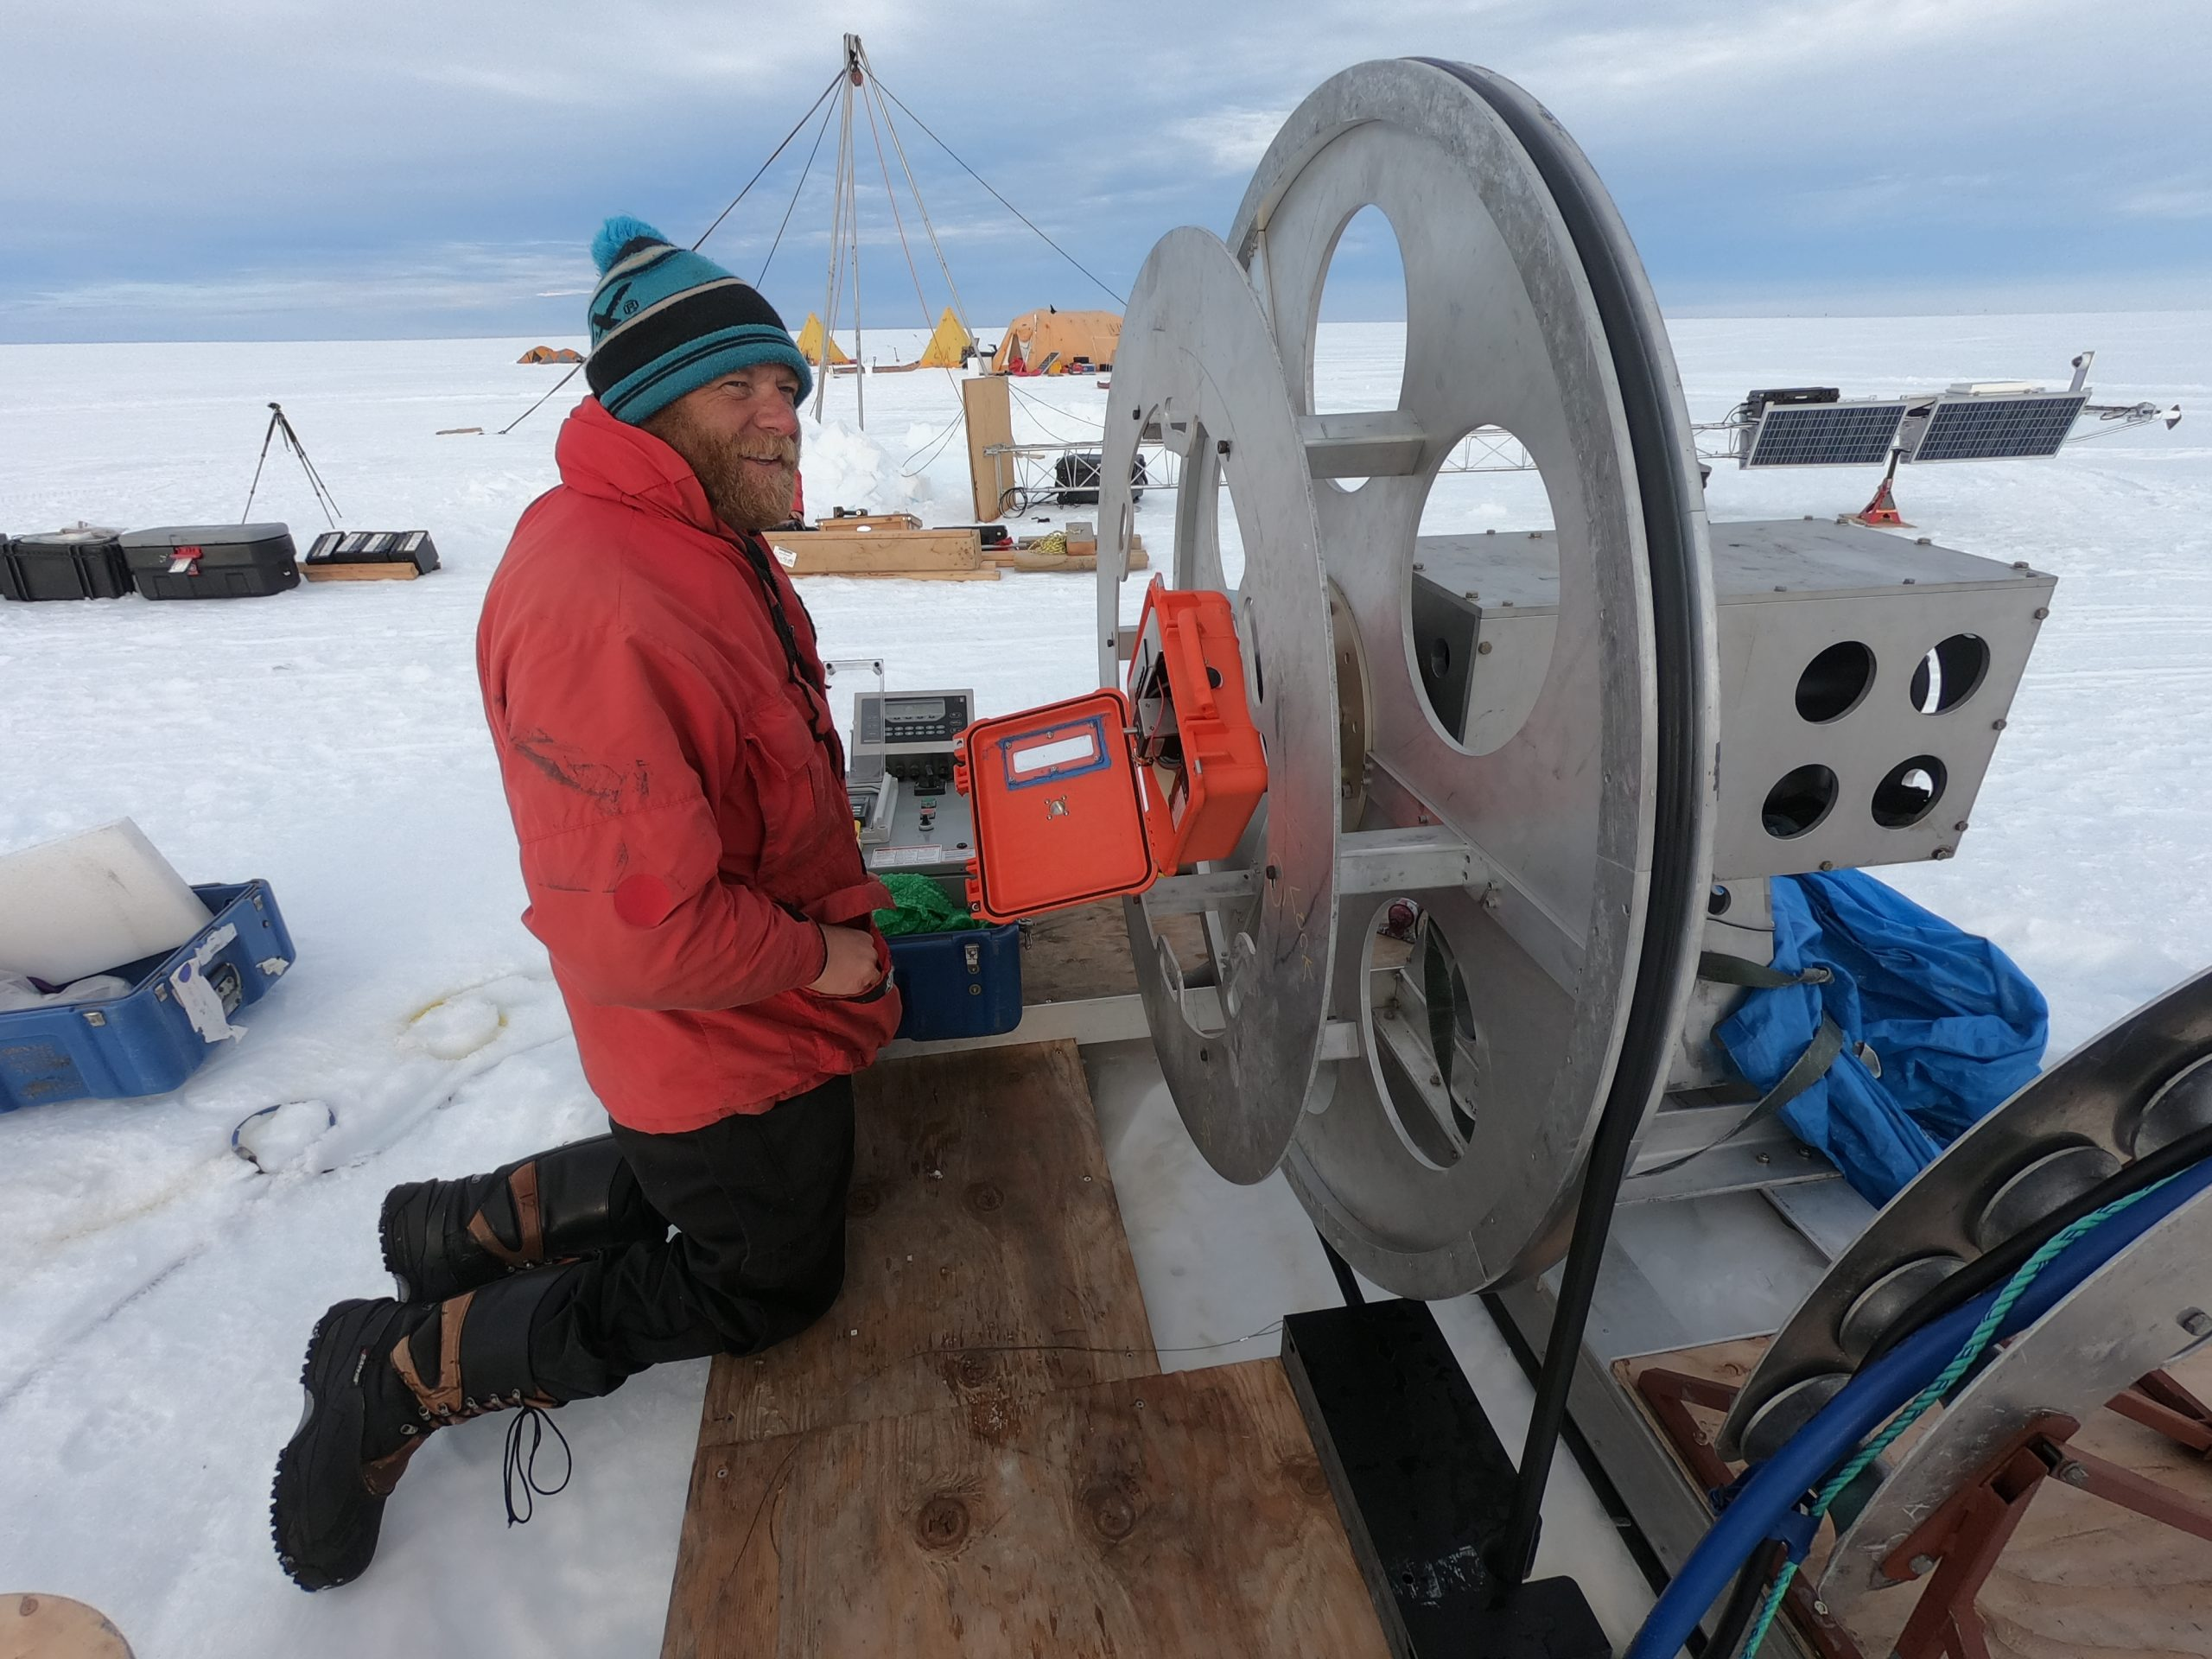 Martin Truffer, a glaciologist from the University of Alaska Fairbanks, monitors the hot water drill as it melts a narrow portal through the 300-meter thick Thwaites Ice Shelf in Antarctica, on December 30, 2019. Photograph by Douglas Fox